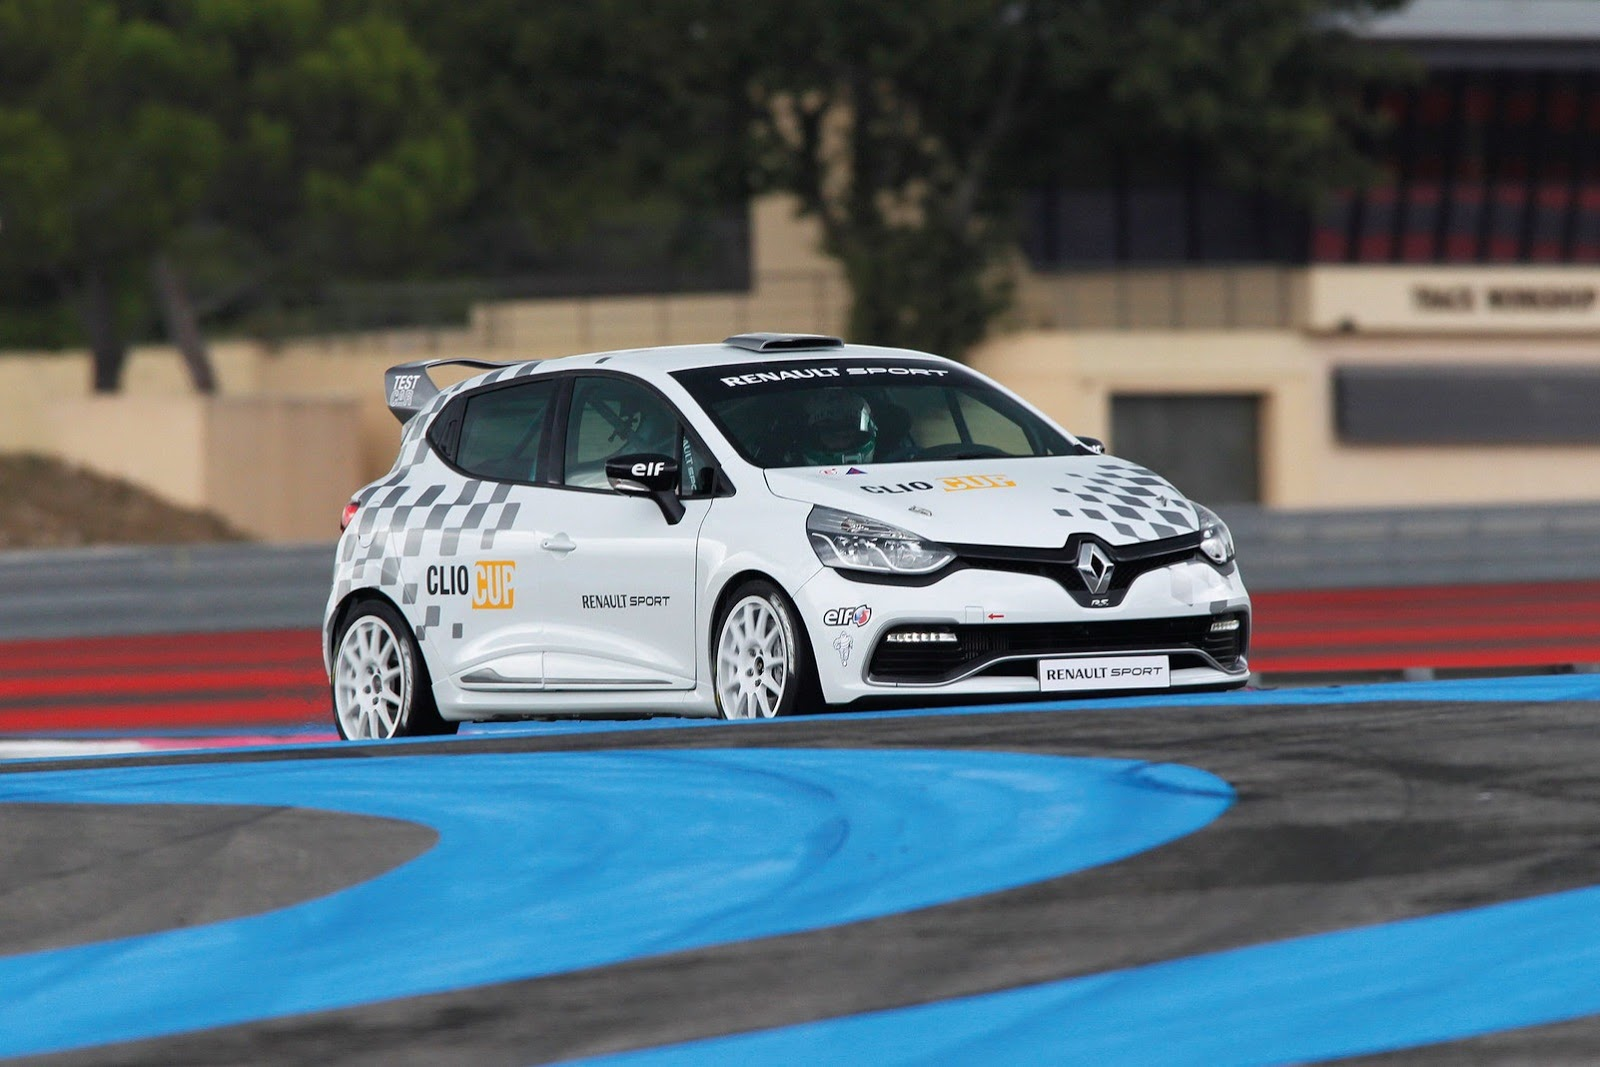 Renault/Alpine licence secured for Project CARS